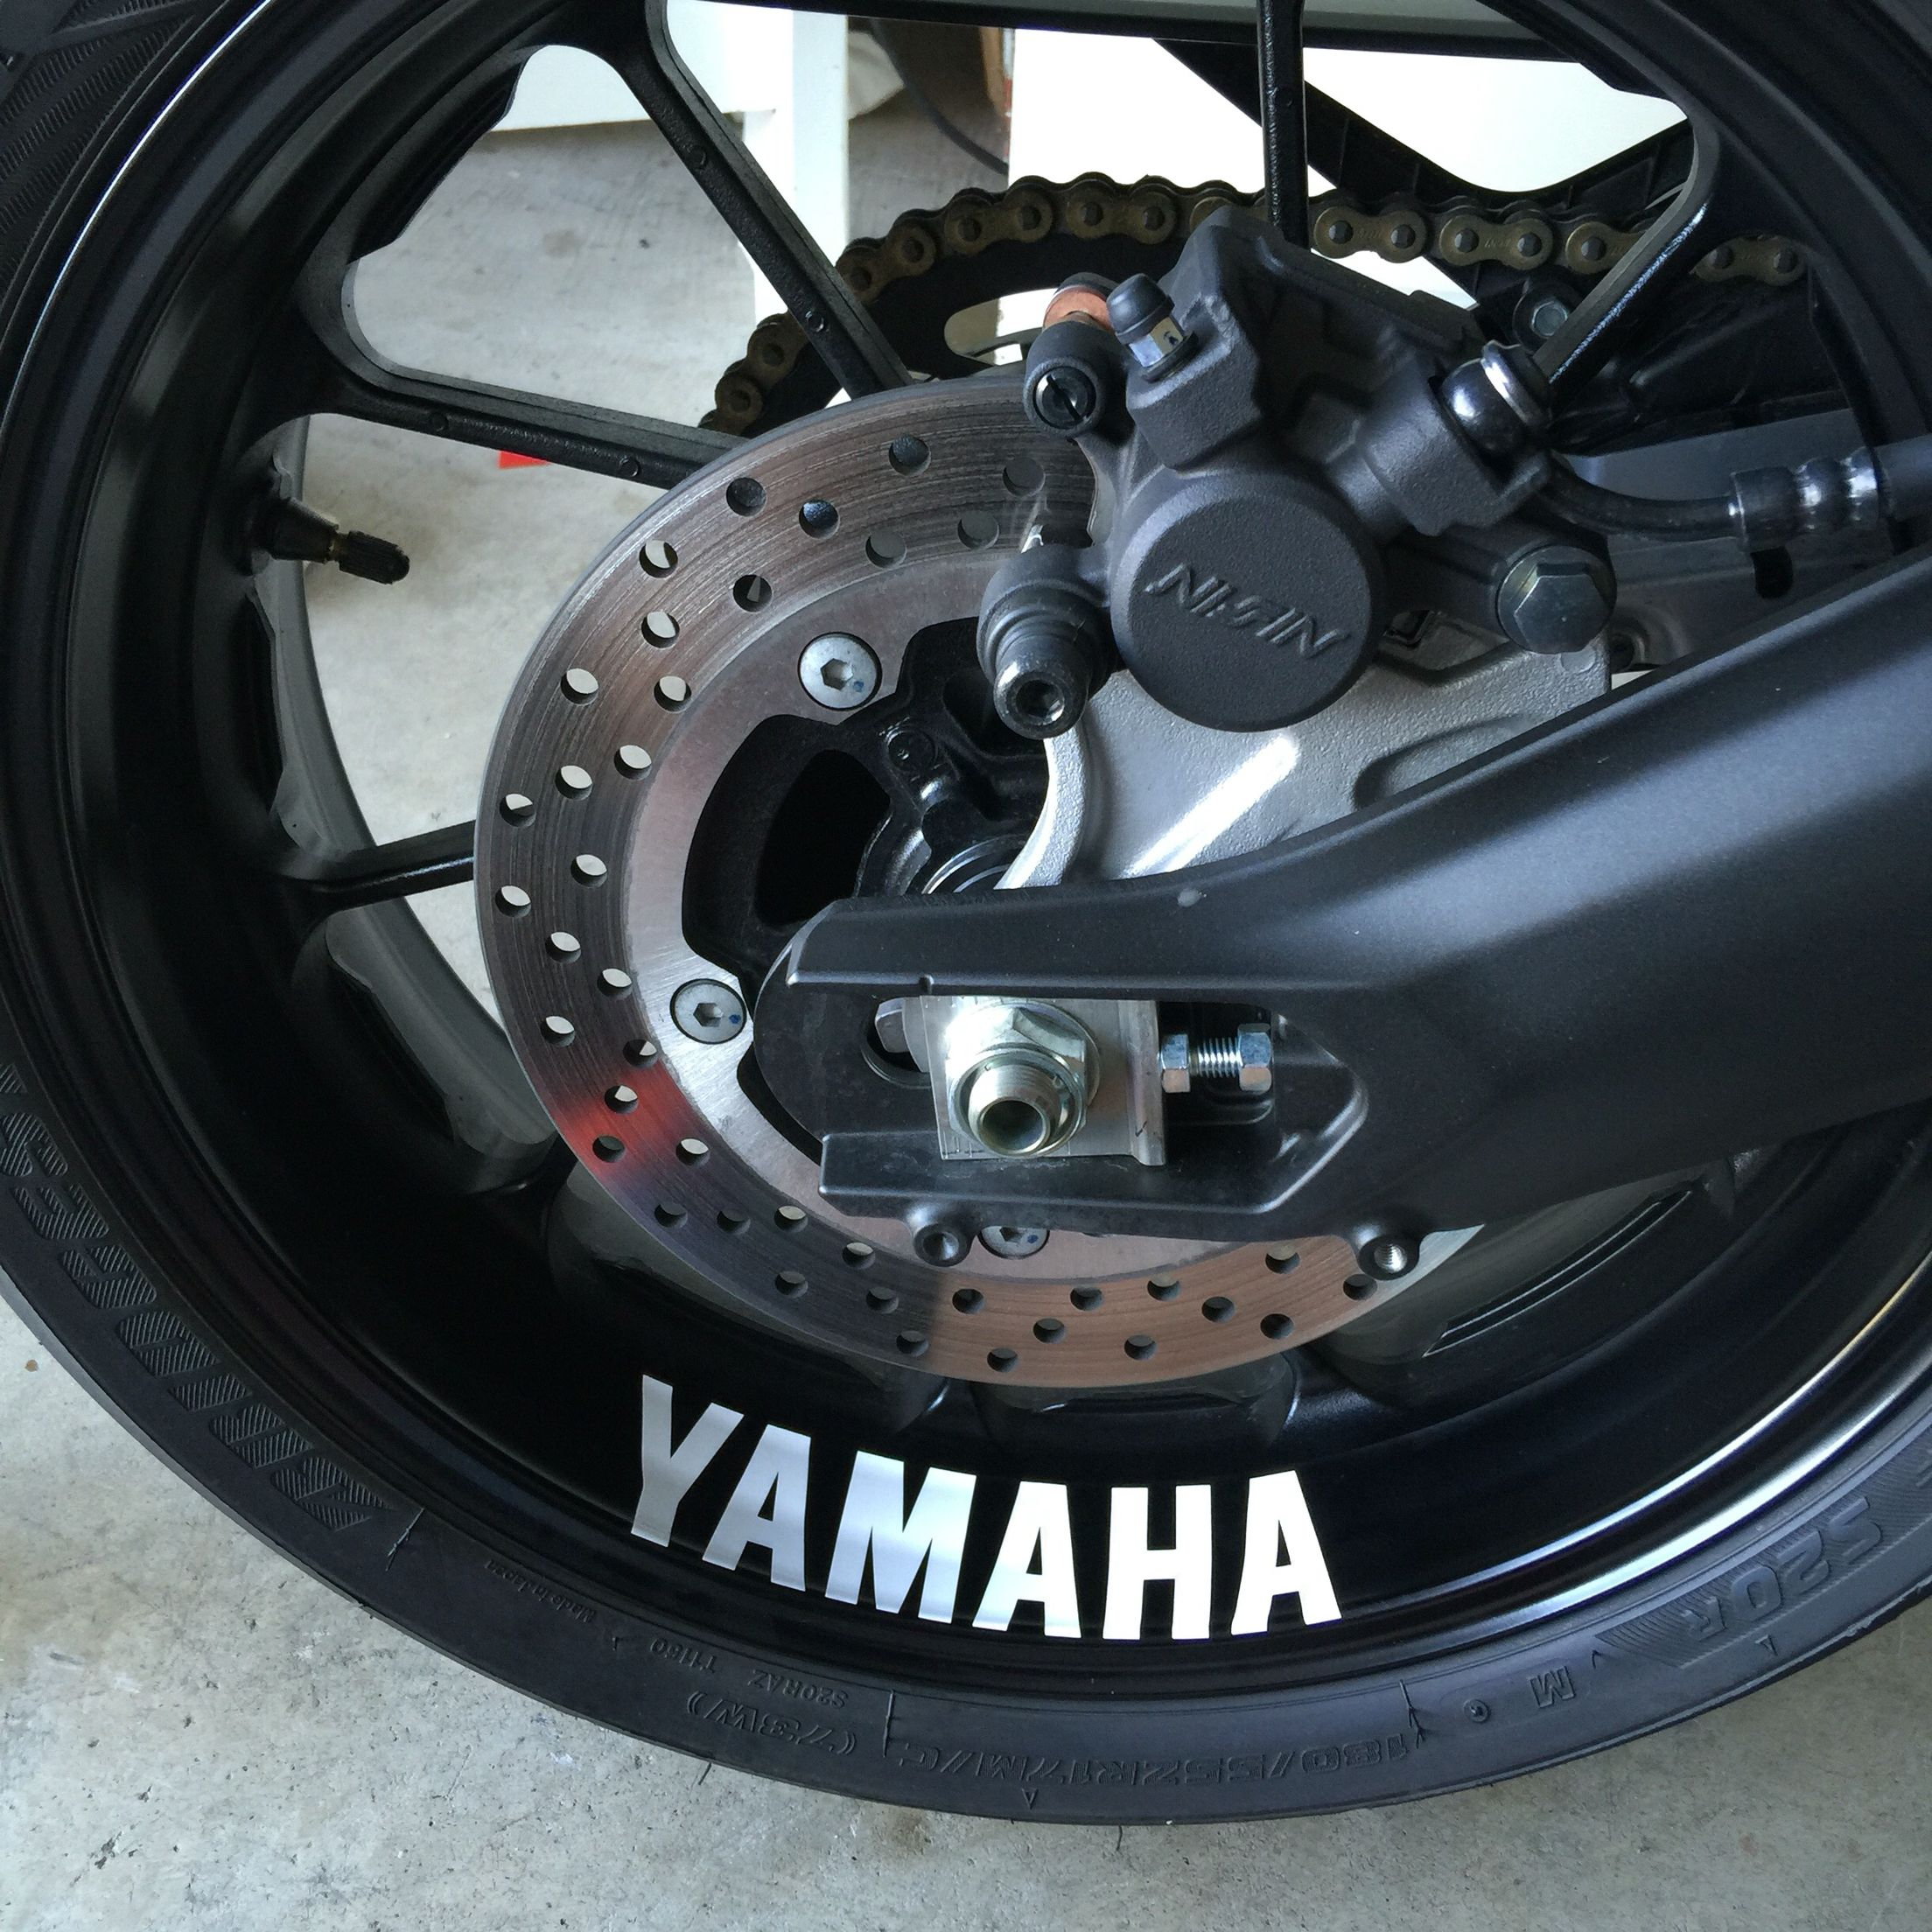 Yamaha rim sticker on my fz 09